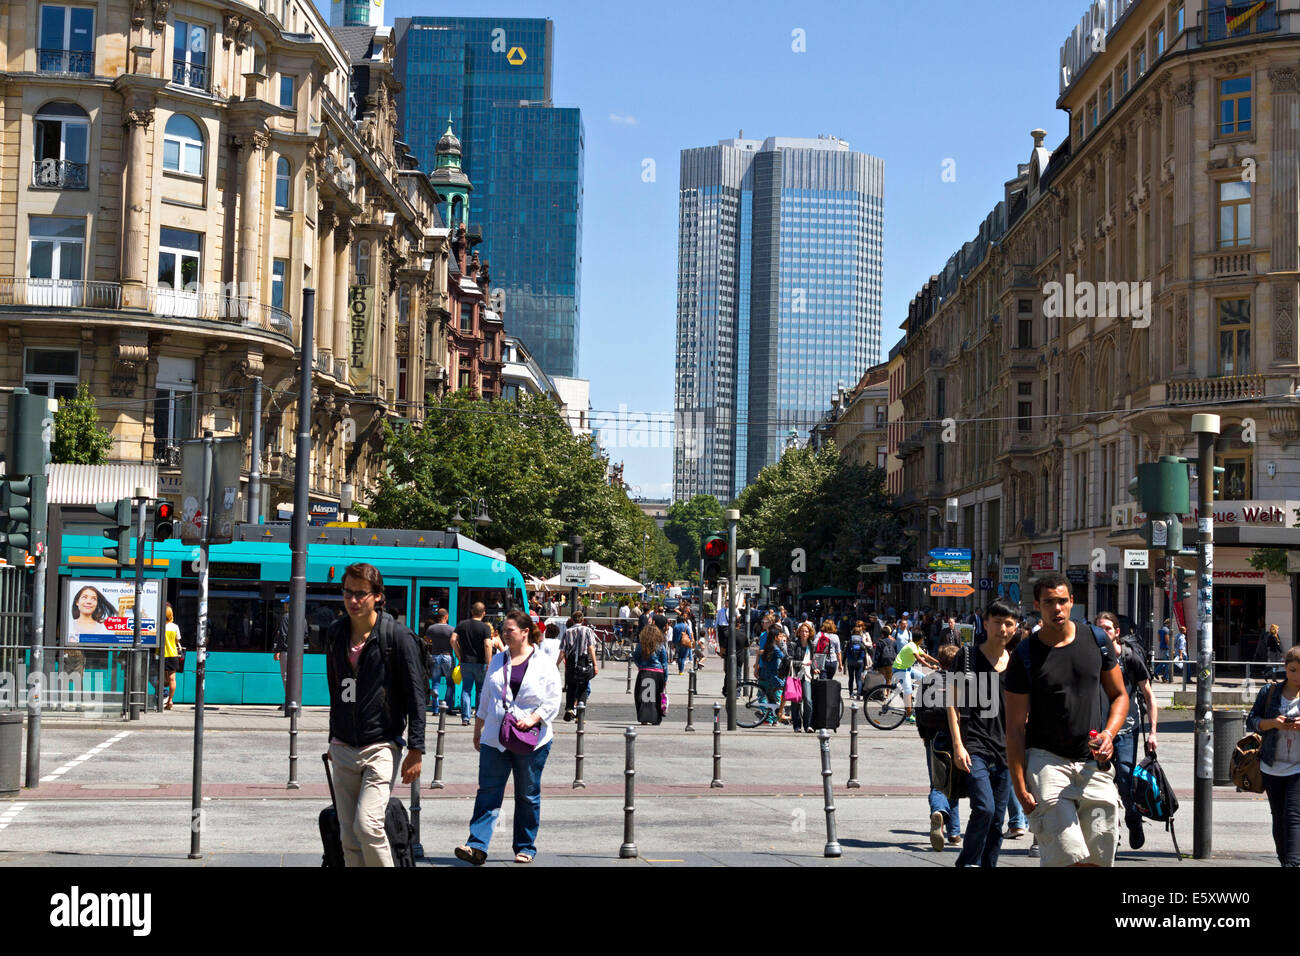 View to the pedestrian mall, Frankfurt am Main, Hesse, Germany, Europe. July 2014 - Stock Image